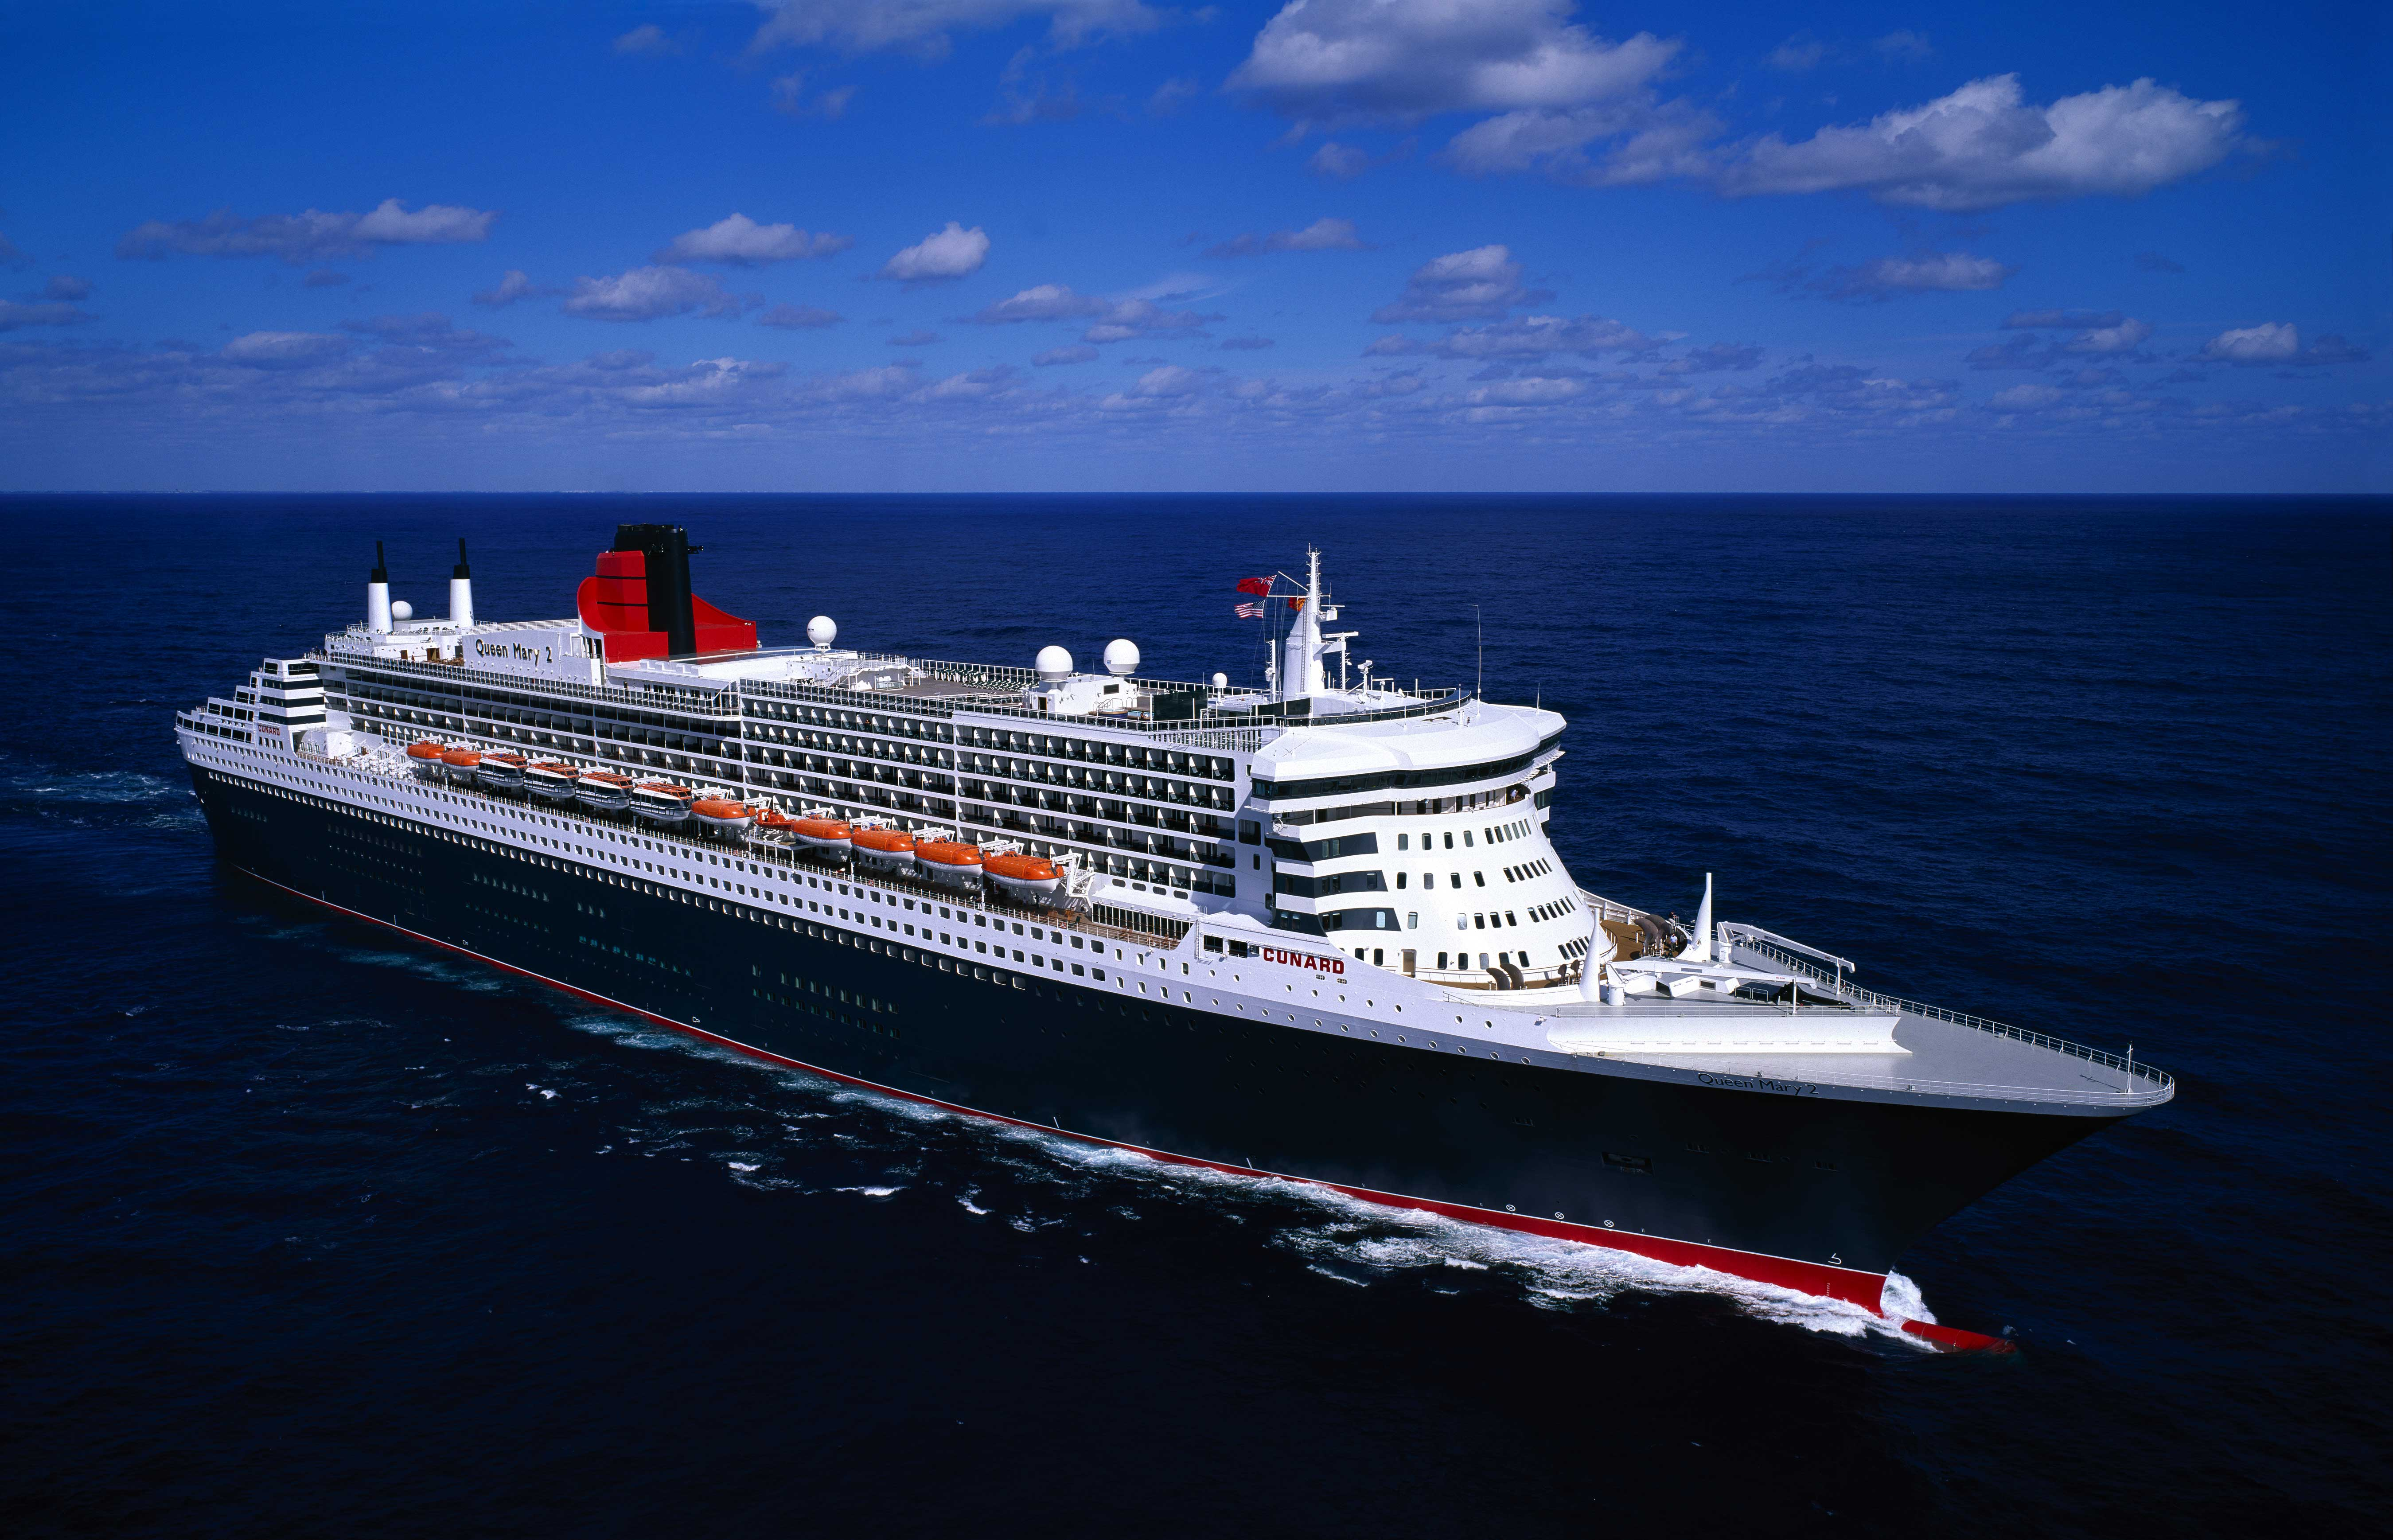 10 reasons you should cruise on the Queen Mary 2